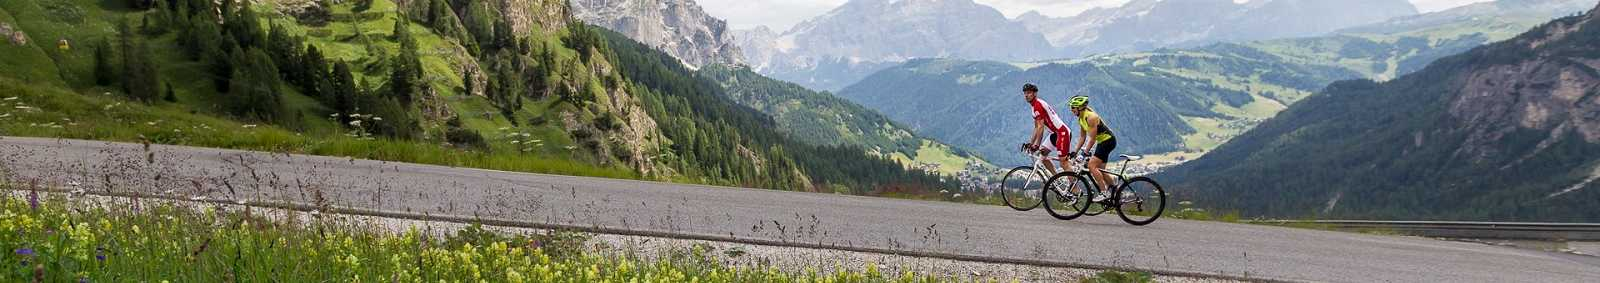 Cycling Alps Adventure